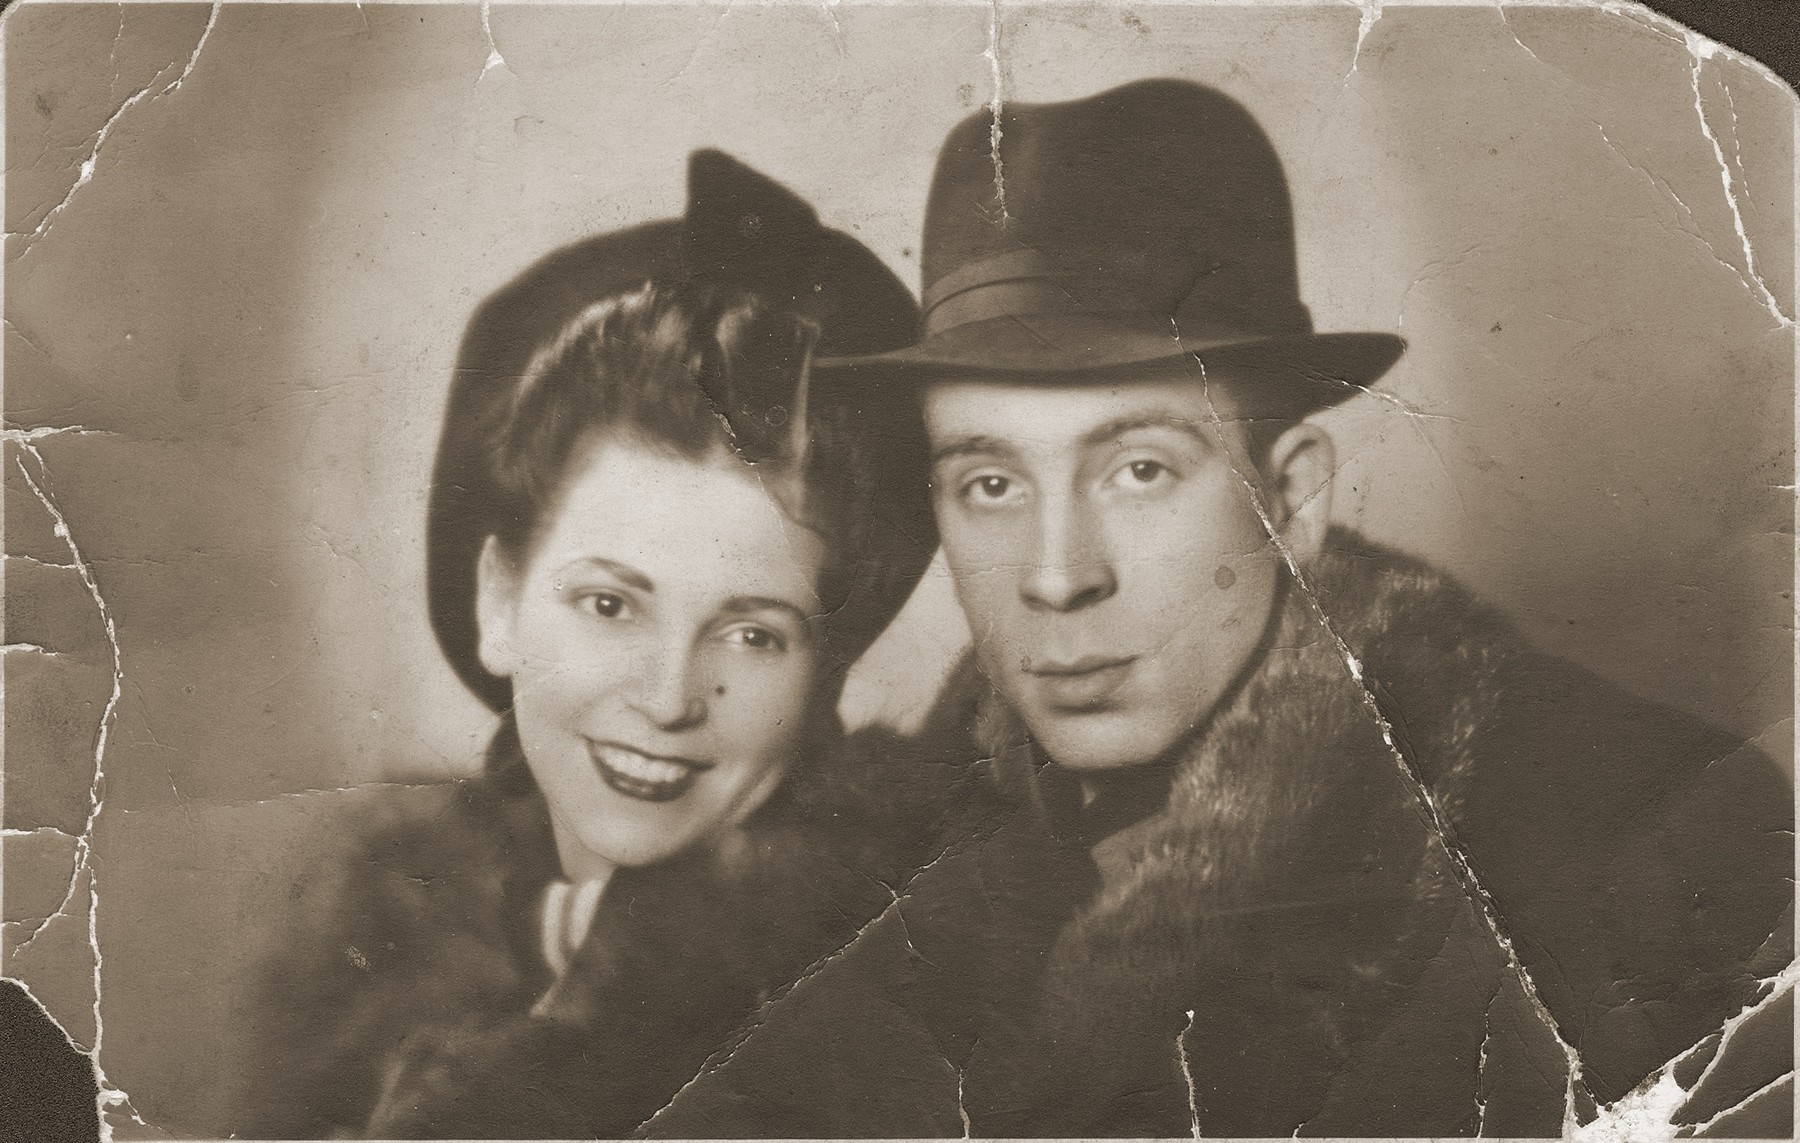 Portrait of Jakub and Zofia Zajd Berkowitz six months after their wedding.    This photograph was found in the gutter in 1943 by a friend who was a member of the Sonderkommando assigned to clean up the ghetto after its liquidation.